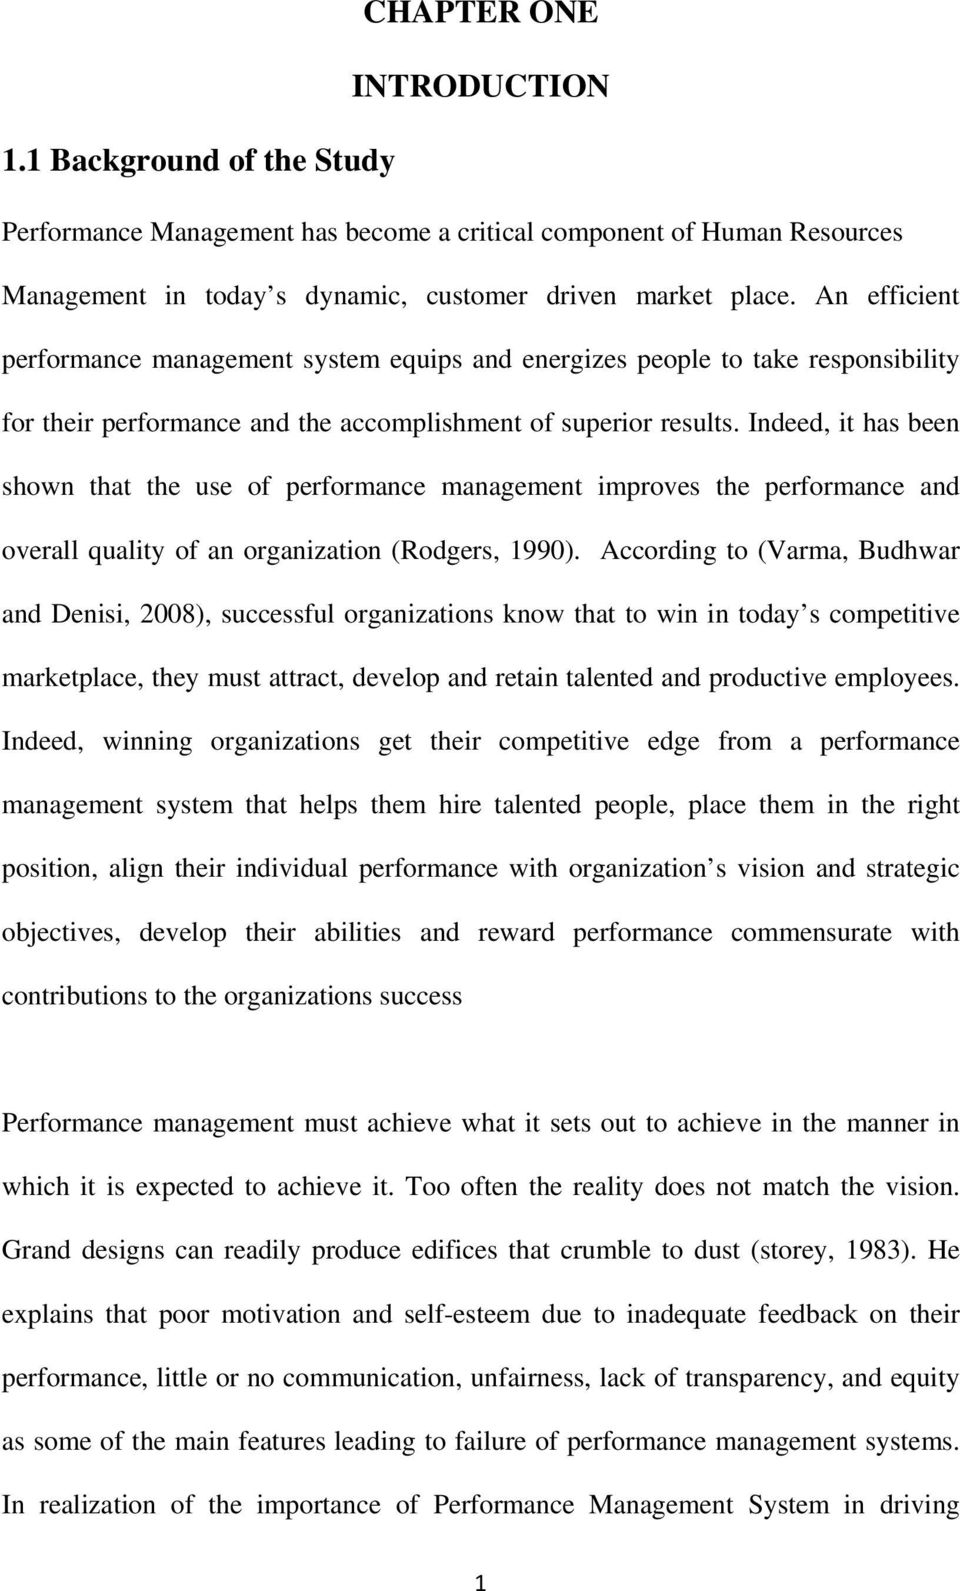 Indeed, it has been shown that the use of performance management improves the performance and overall quality of an organization (Rodgers, 1990).